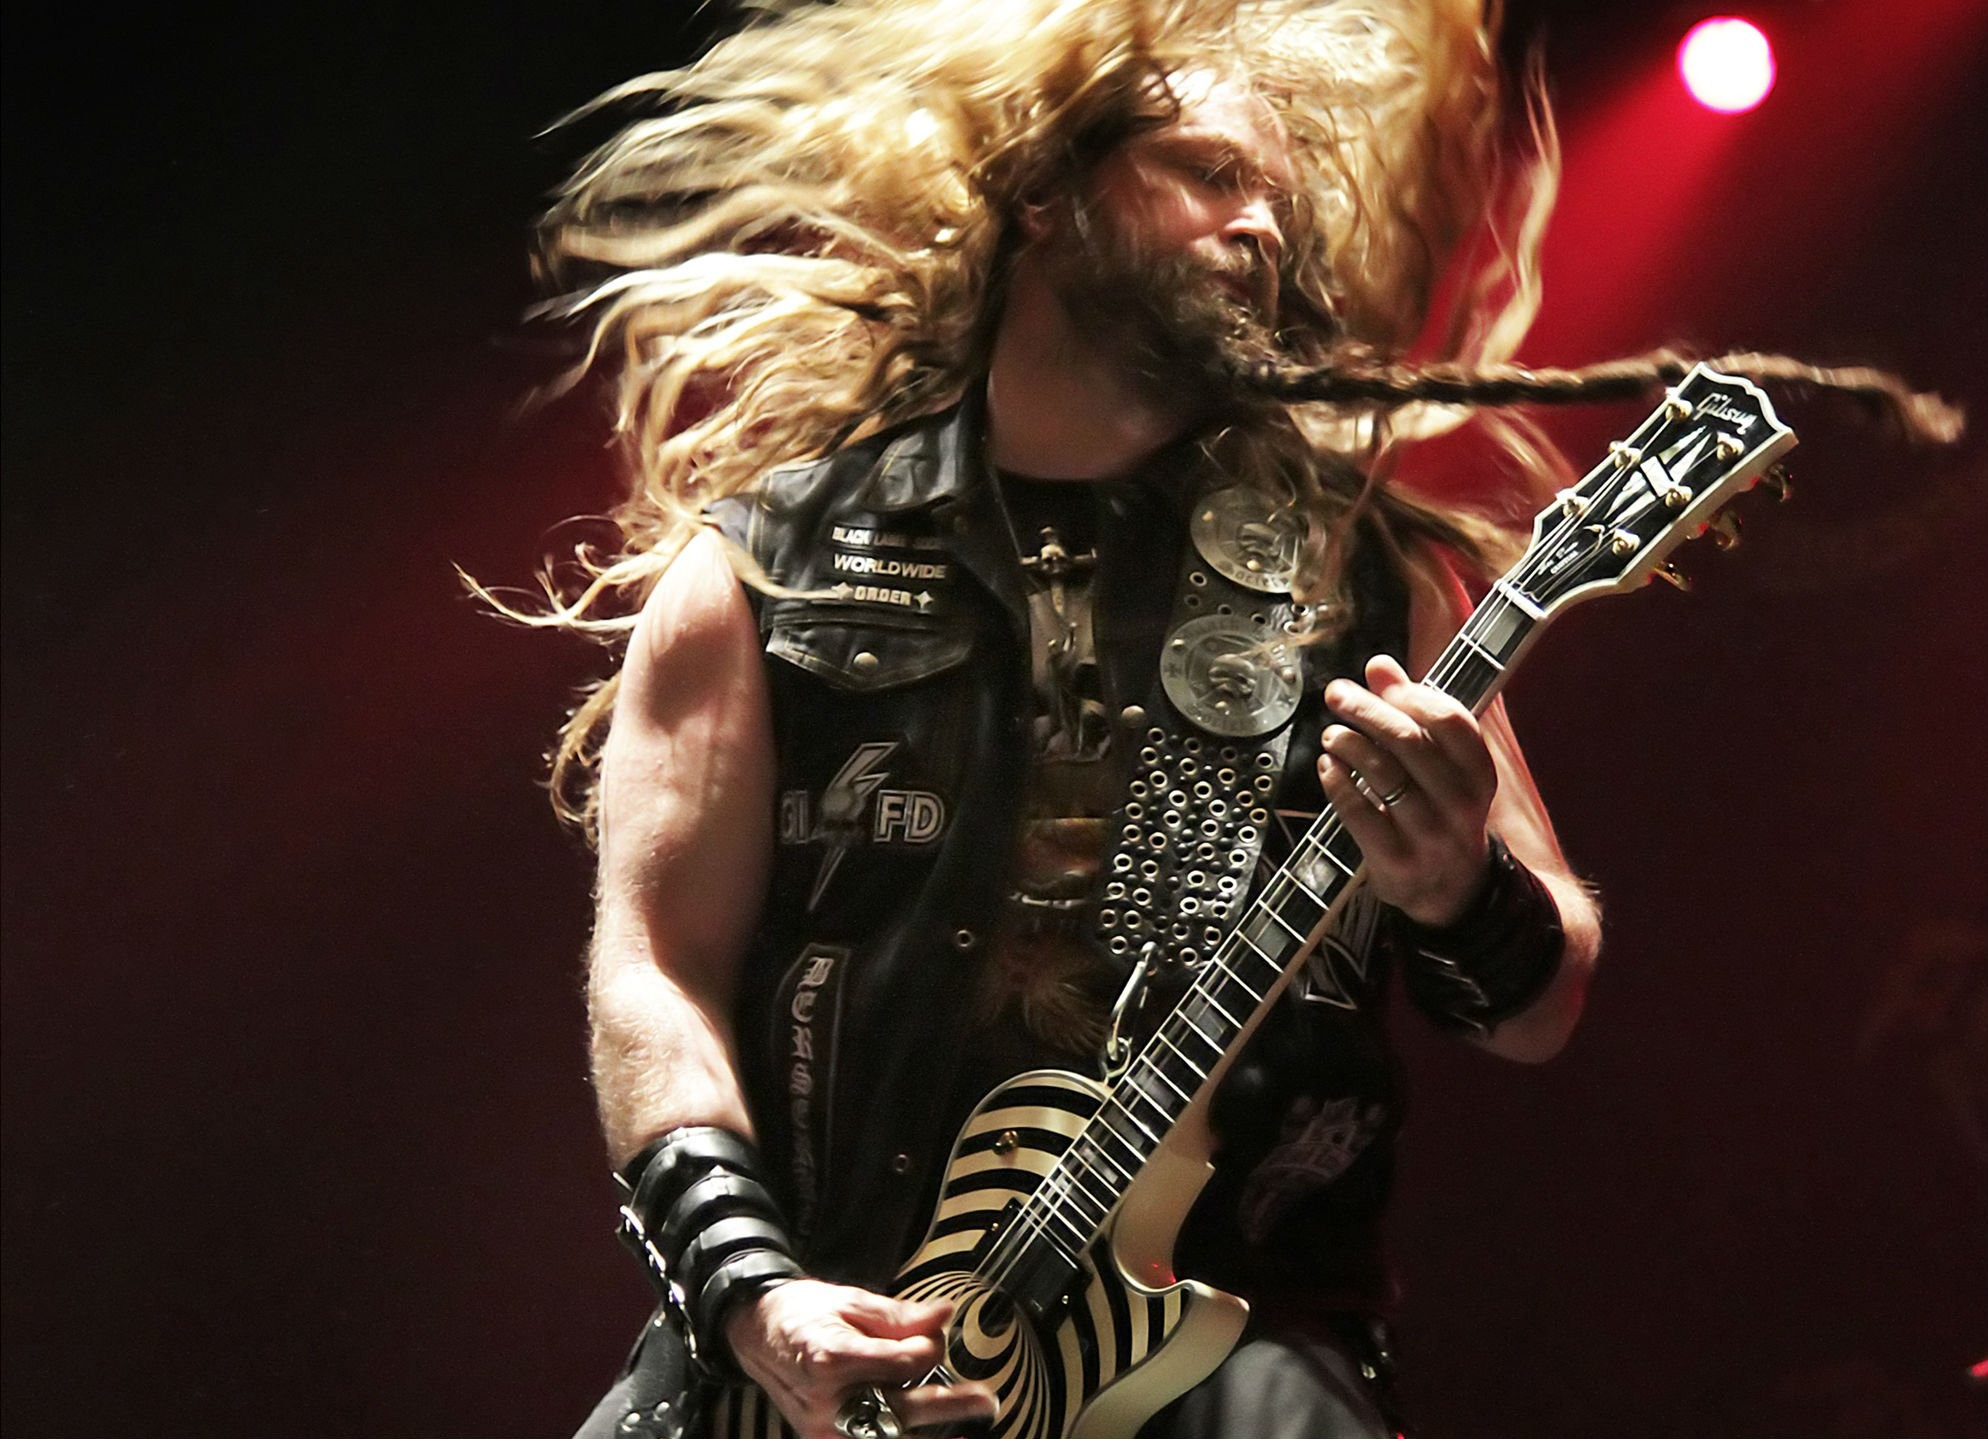 1988x1439 ZAKK WYLDE Black Label Society Zakk Wylde Ozzy guitar heavy metal wallpaper  |  | 917657 | WallpaperUP